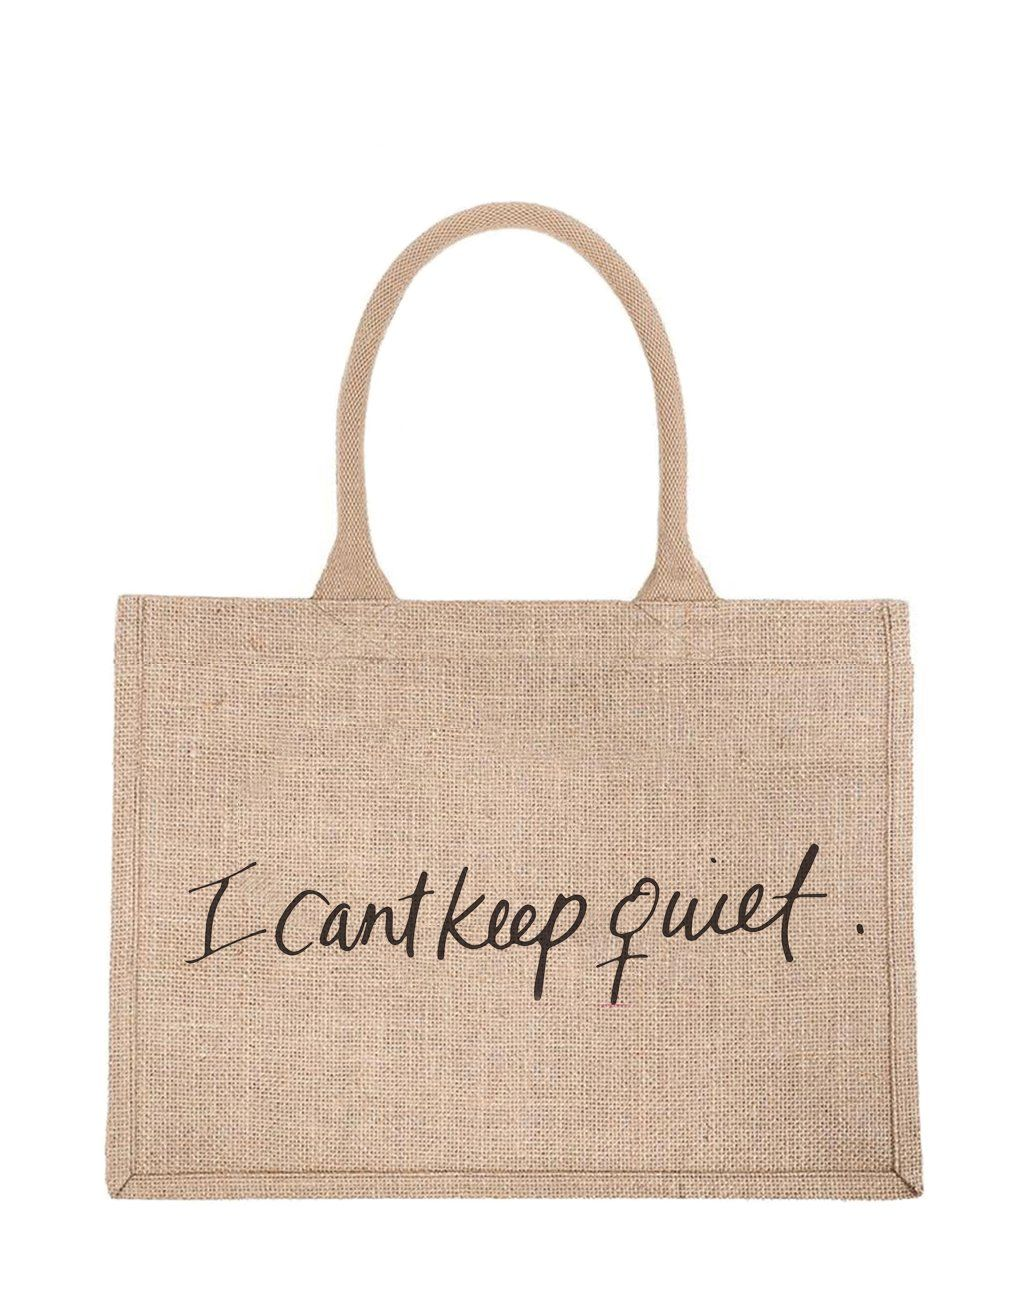 Download Purposefull Tote Tlm X I Can T Keep Quiet Reusable Shopping Bags Shopping Tote Bag Shopping Tote